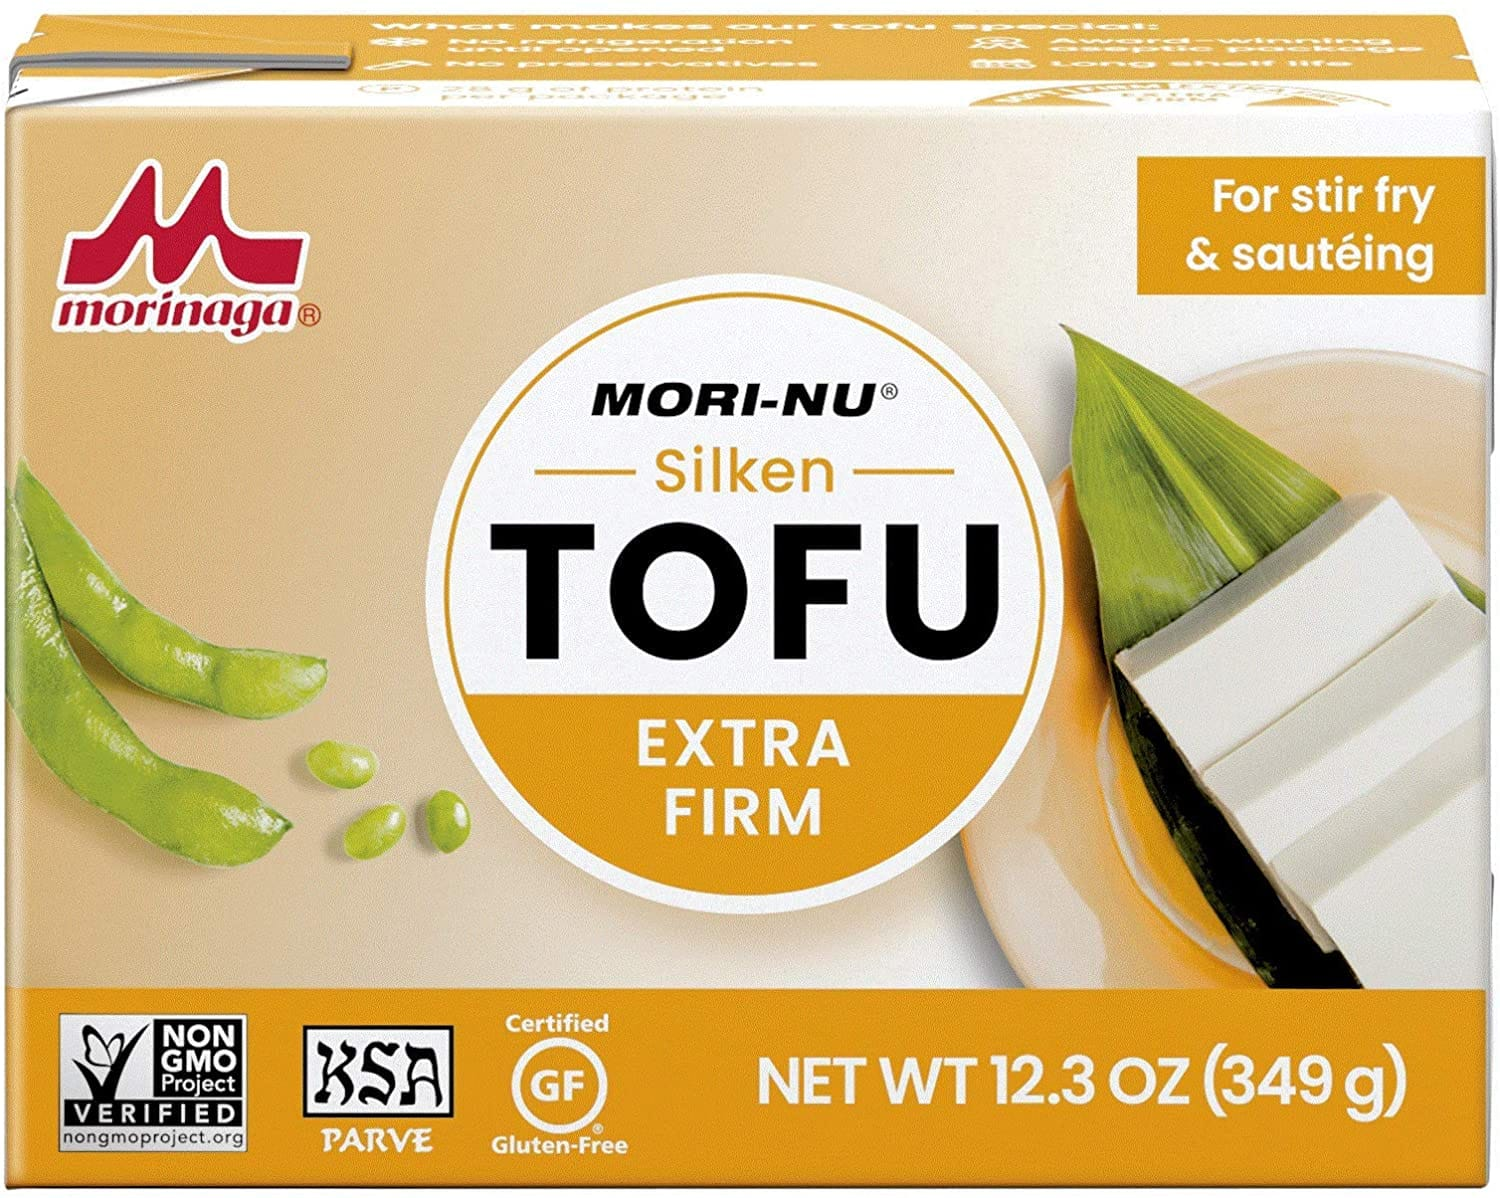 Mori-Nu Silken Extra Firm Tofu 12.3oz x 12 Pack for $14.02 (or less with S&S) at Amazon